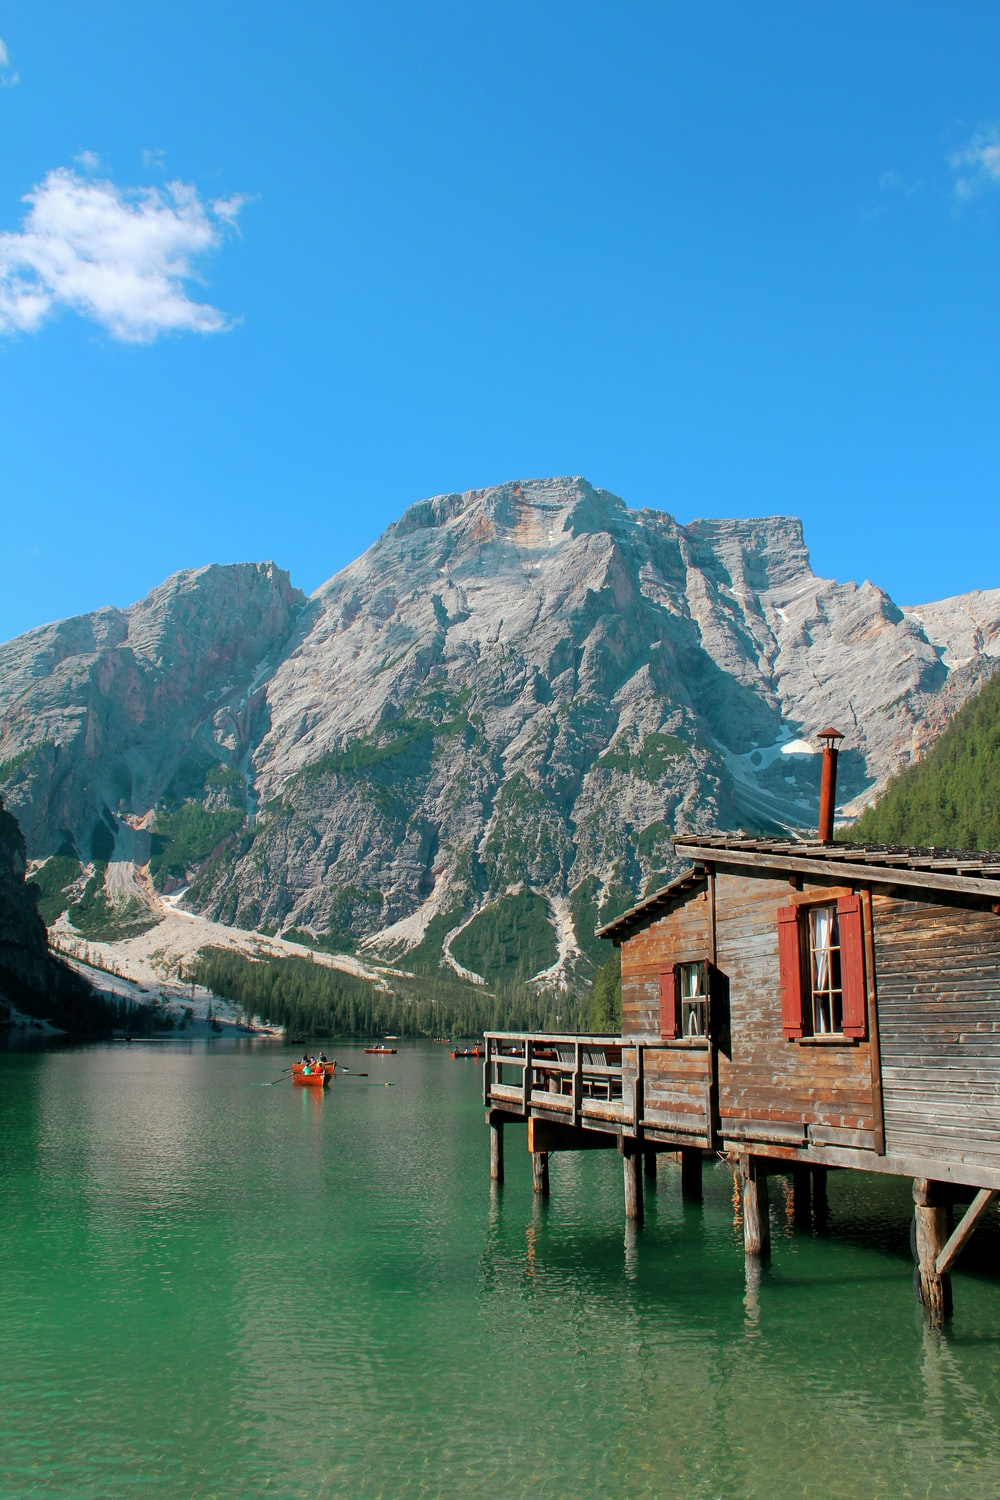 brown wooden house on lake dock near mountain under blue sky during daytime